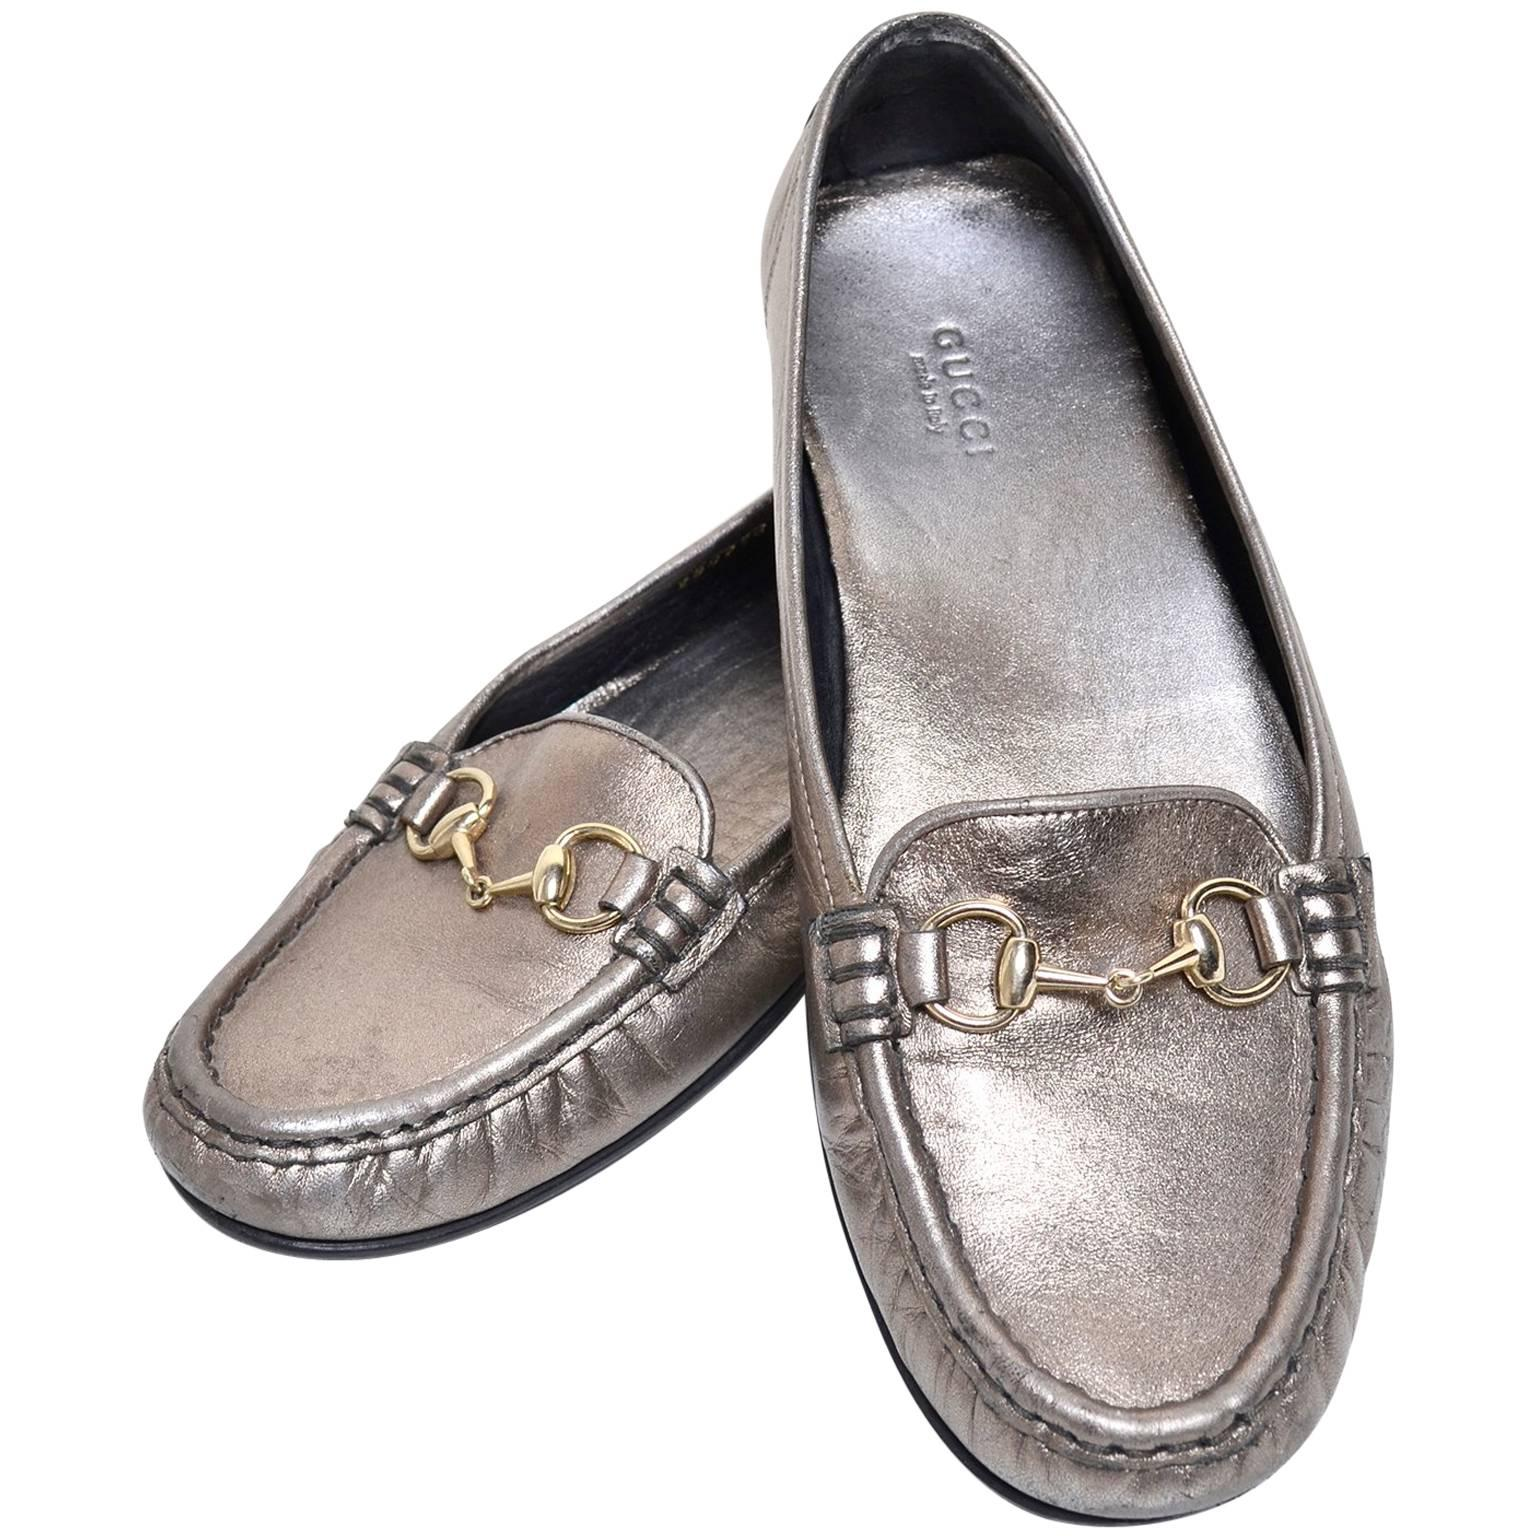 a6cd29d44cf Gucci Womens Metallic Loafer Driver Shoes with Horse Bit Buckles Size 37.5  For Sale at 1stdibs